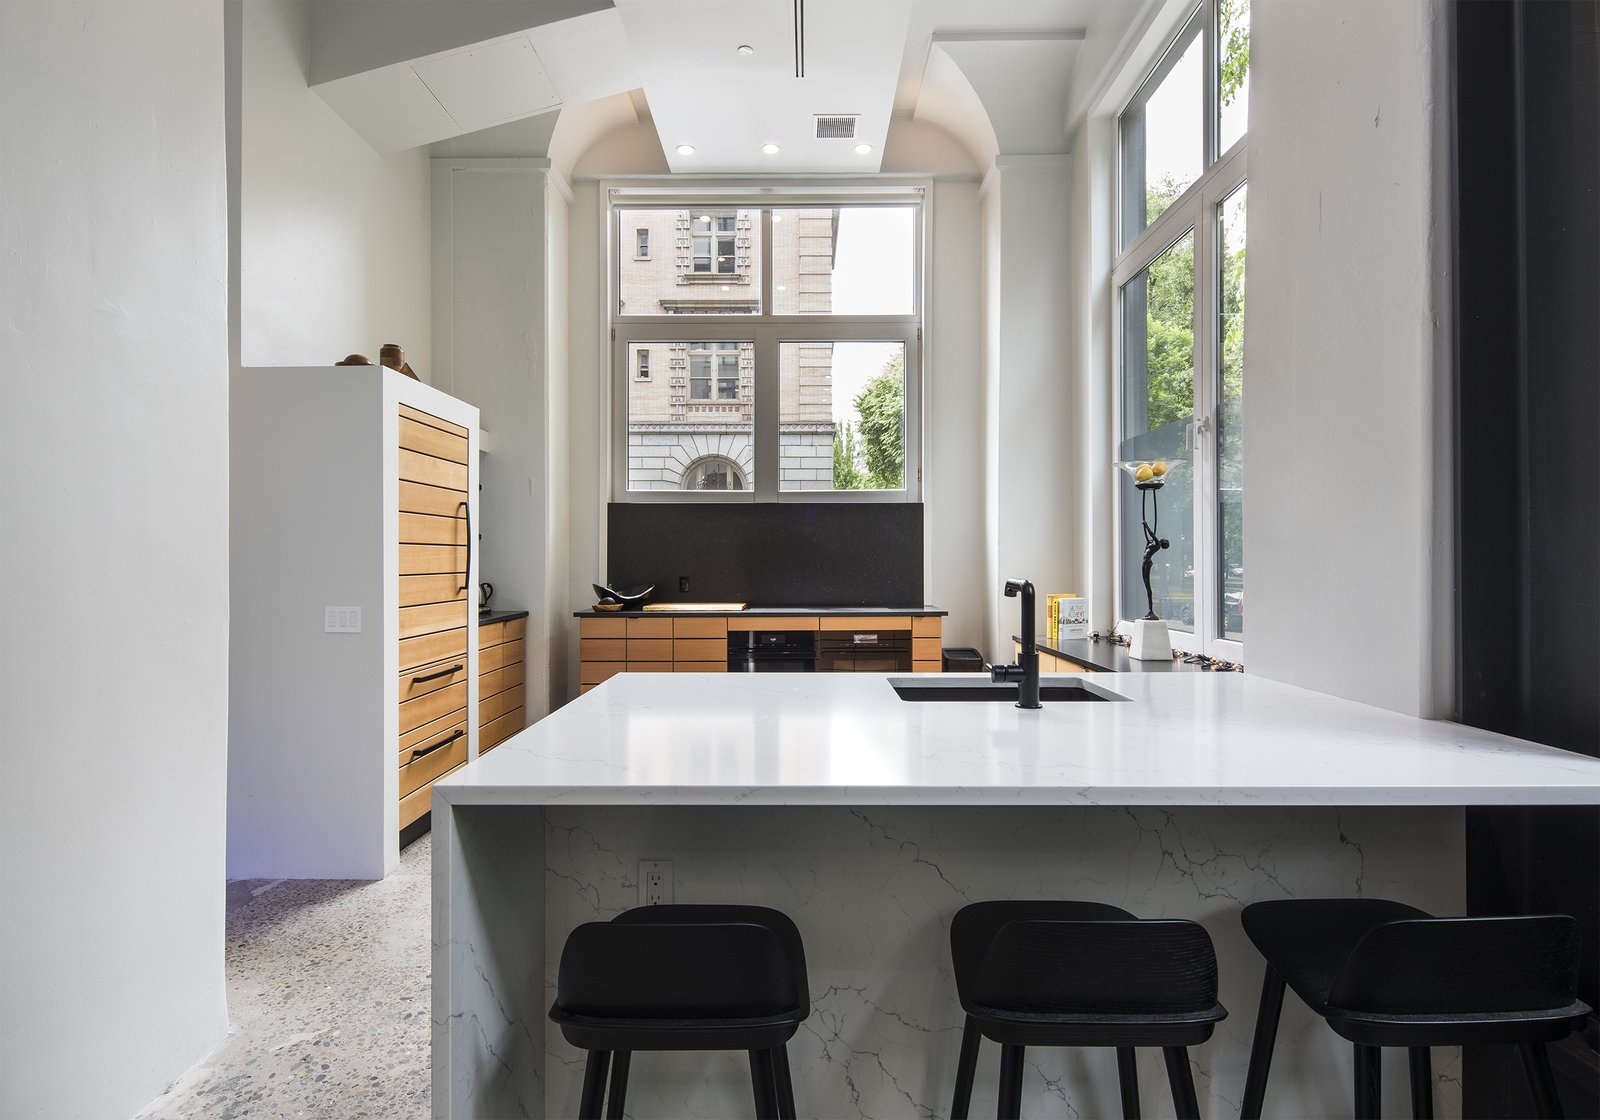 Kitchen, Engineered Quartz, Recessed, Refrigerator, Wood, Wall Oven, Drop In, Concrete, and Cooktops  Best Kitchen Cooktops Recessed Wall Oven Wood Concrete Photos from Park Ave Live Work